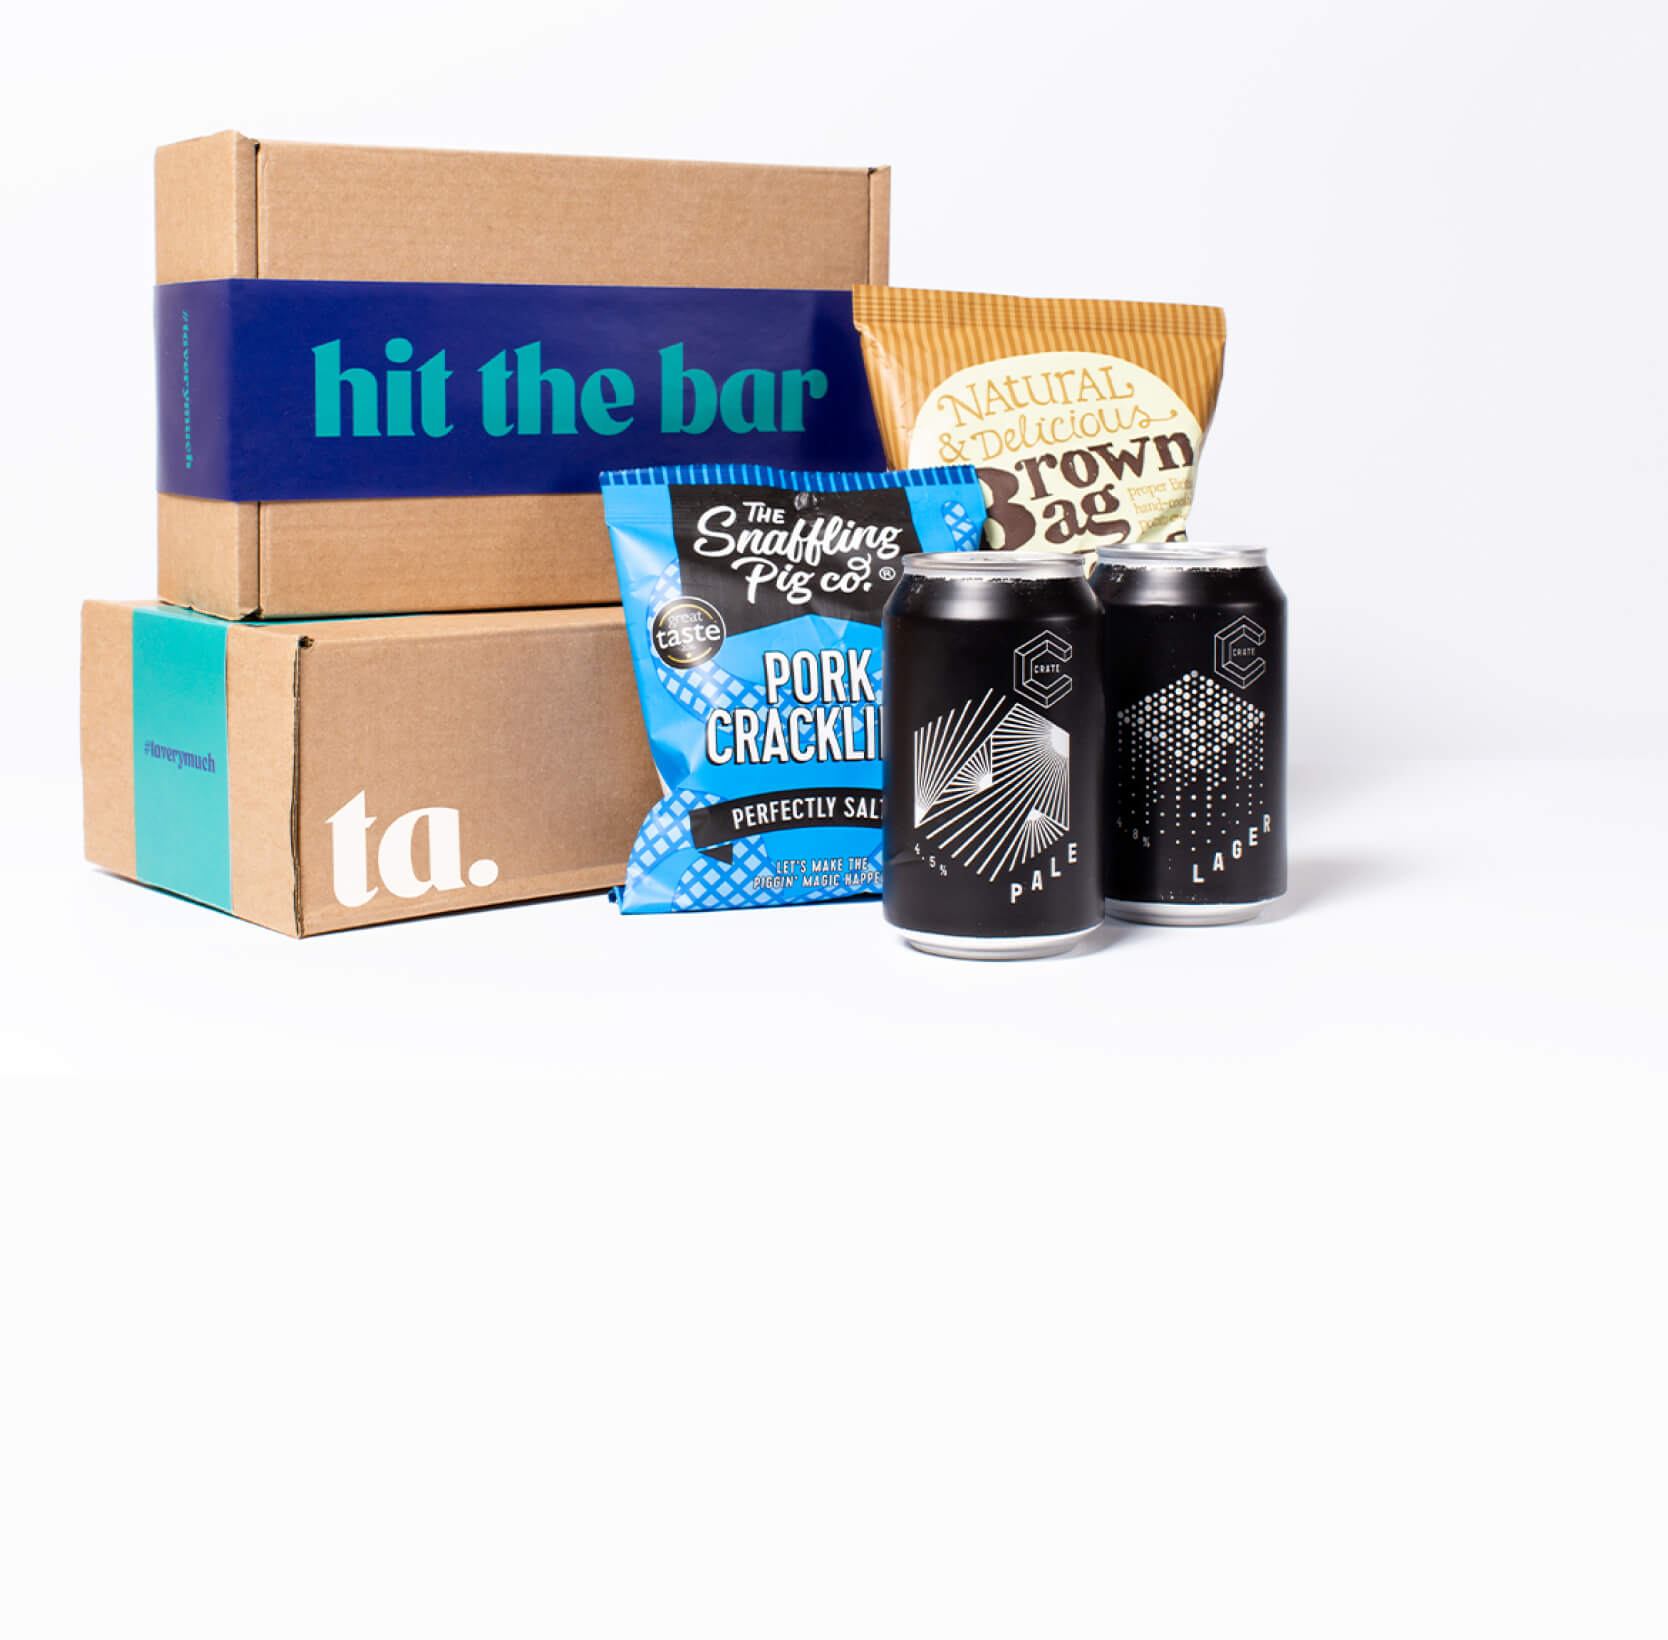 """""""hit the bar"""" ta. gift box. Includes 2 cans of Crate Brewery craft beer, Snaffling Pig pork scratchings & Brown Bag crisps."""